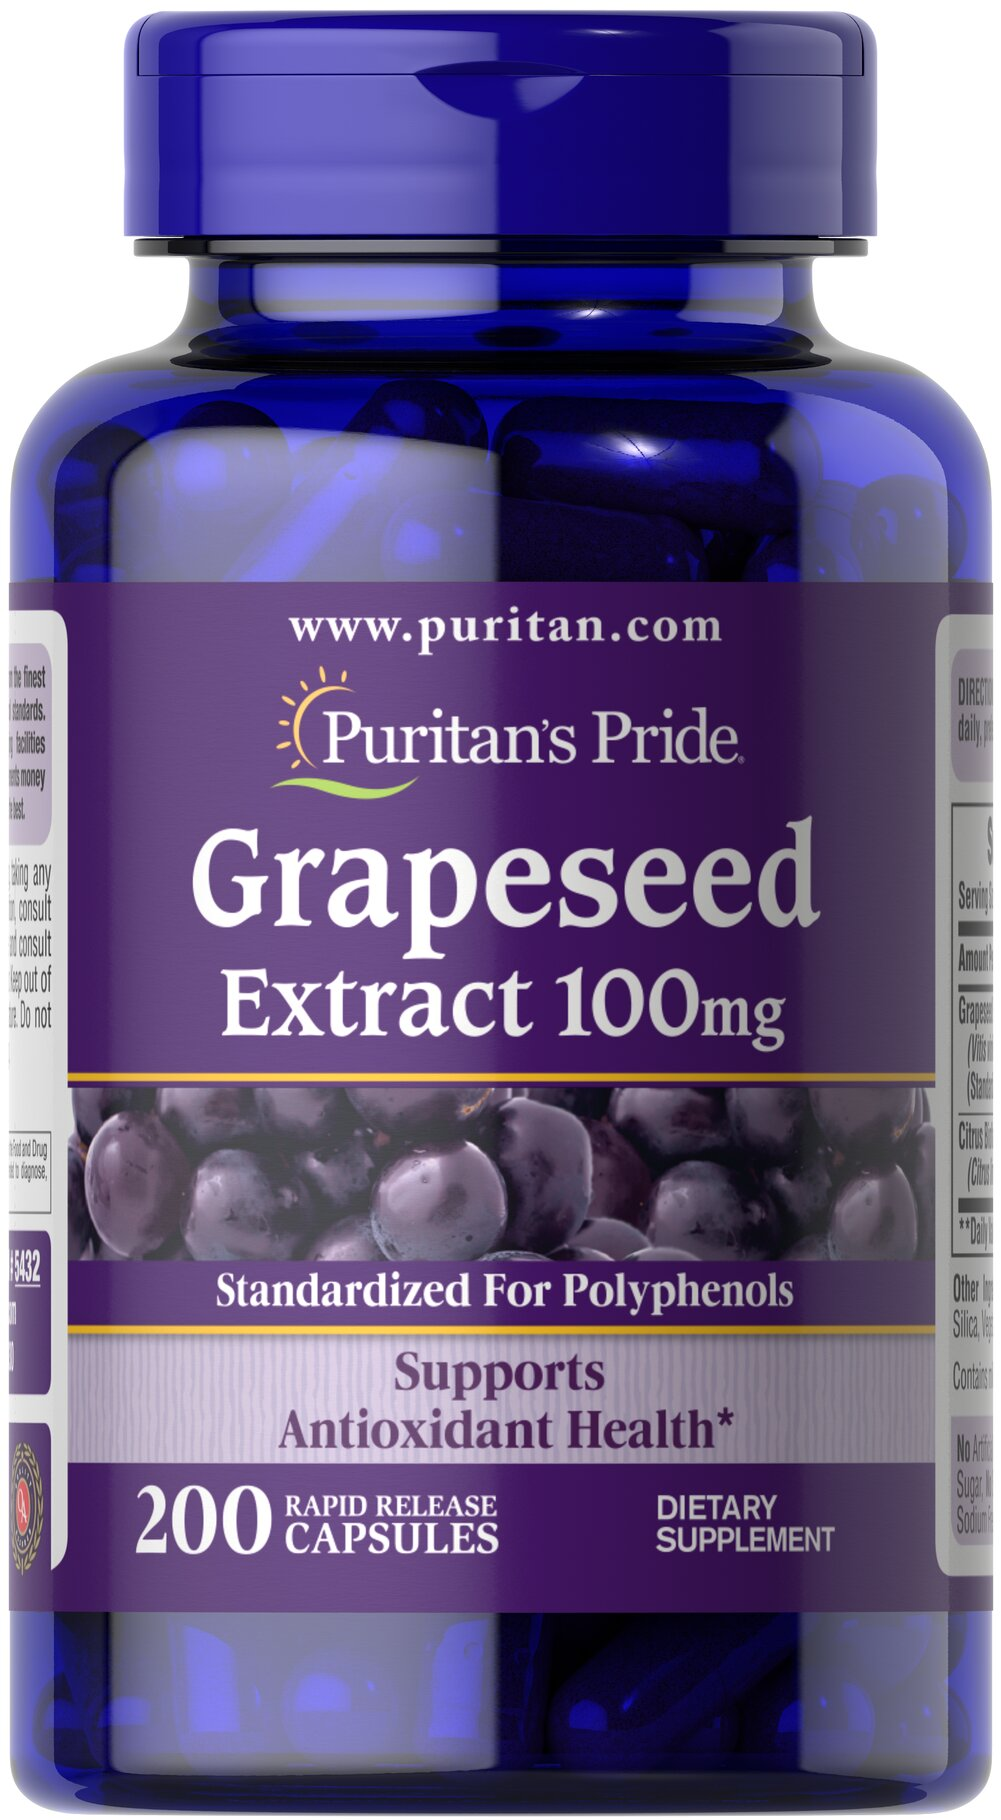 Grapeseed Extract 100 mg <p><strong></strong>Grapeseed Extract helps support antioxidant health.** Antioxidants are nutrients that help to counter the destructive nature of free radicals and assist in maintaining good health.** Grapeseed extract contains oligomeric proanthocyanidins (OPCs), which are naturally occurring bioflavonoids. Standardized to contain 50% Polyphenols. Adults can take one capsule three times daily.</p> 200 Capsules 100 mg $8.24